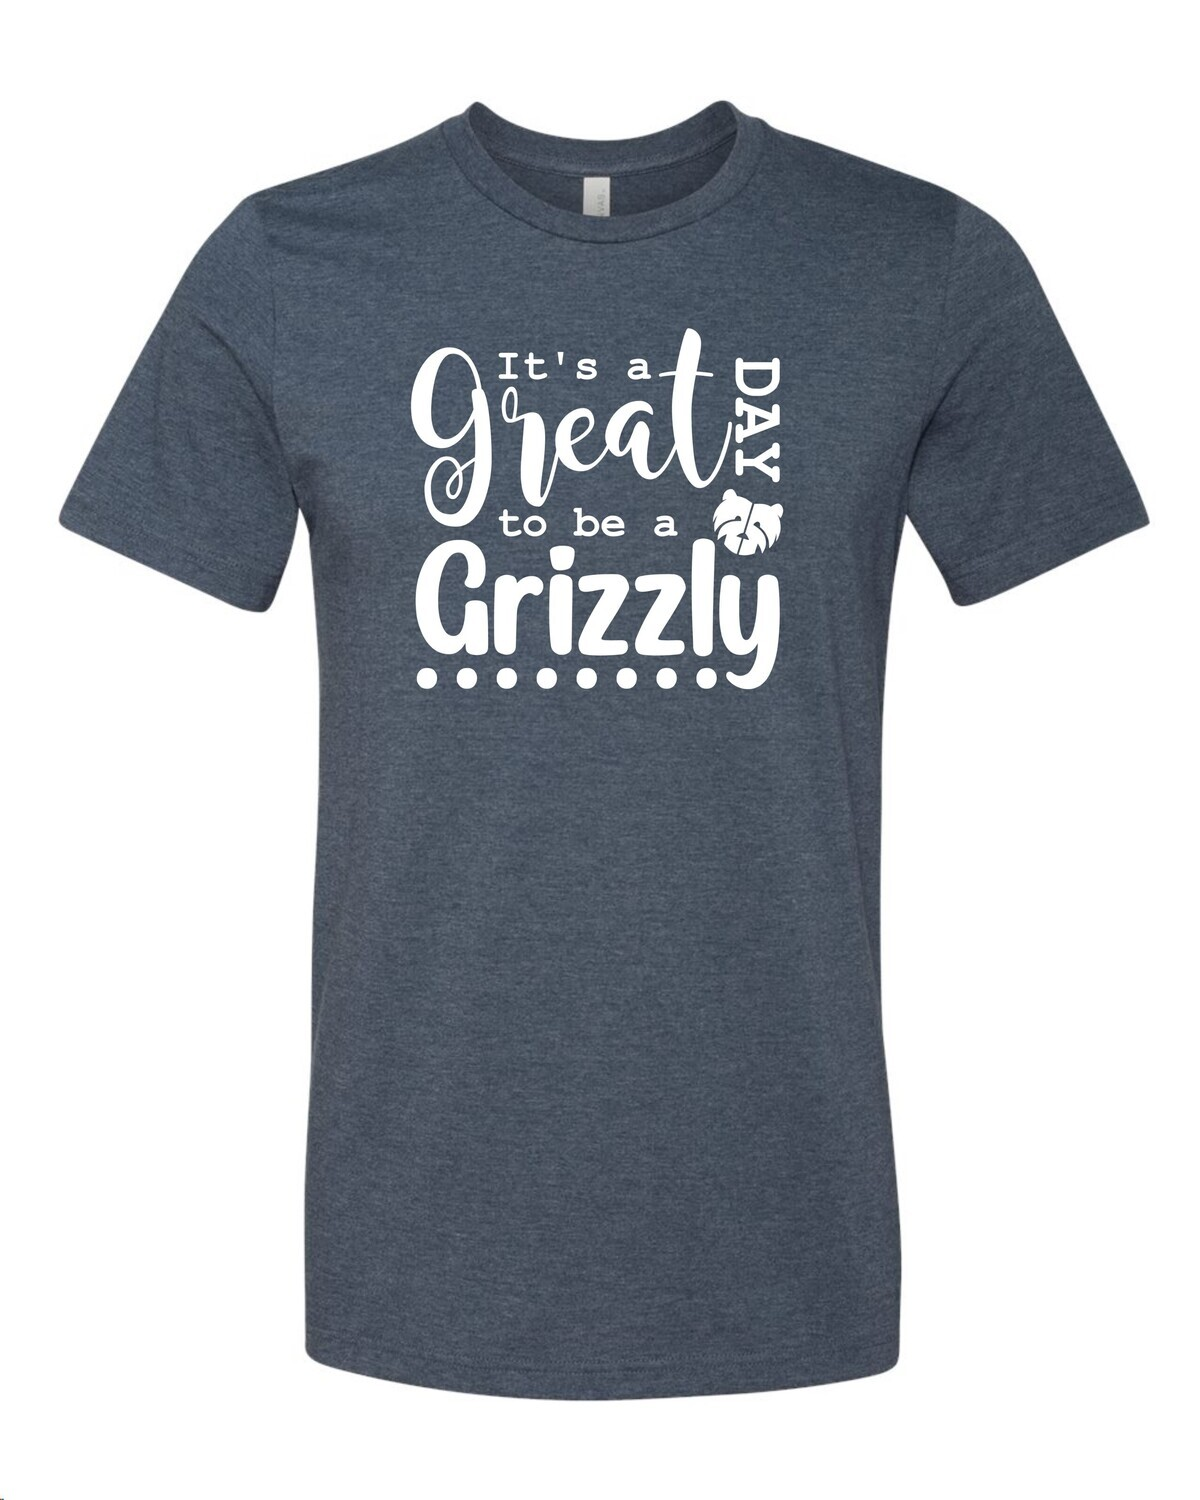 STAFF ONLY 21-22  It's a Great Day to Be a Grizzly